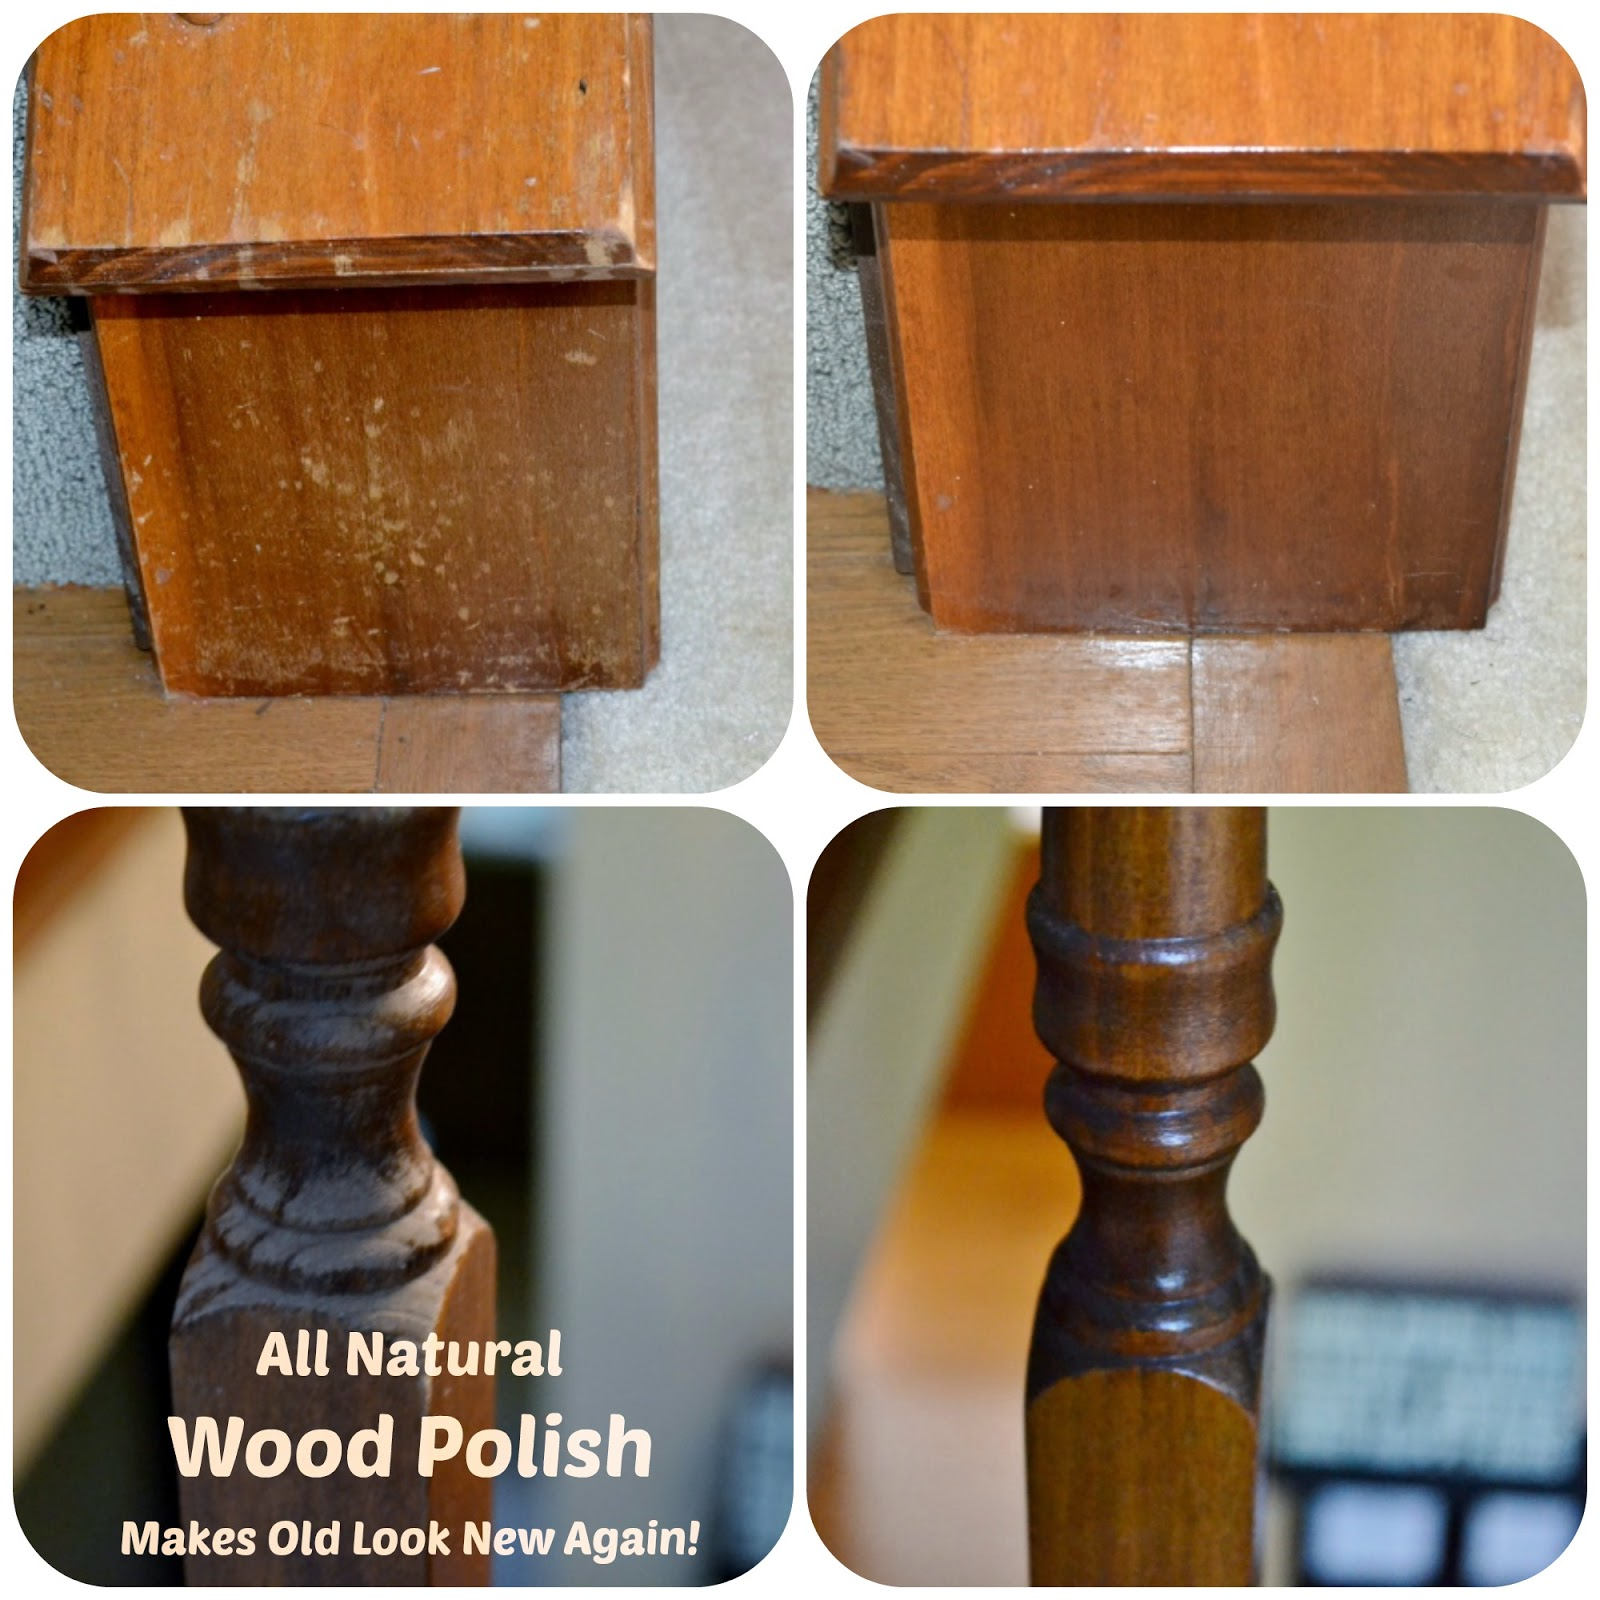 I Have Seen A Few Places On The Internet How You Can Make Old Wood Furniture  Look New By Using Homemade Polish. I Have Wanted To Try It On Our  Baseboards ...